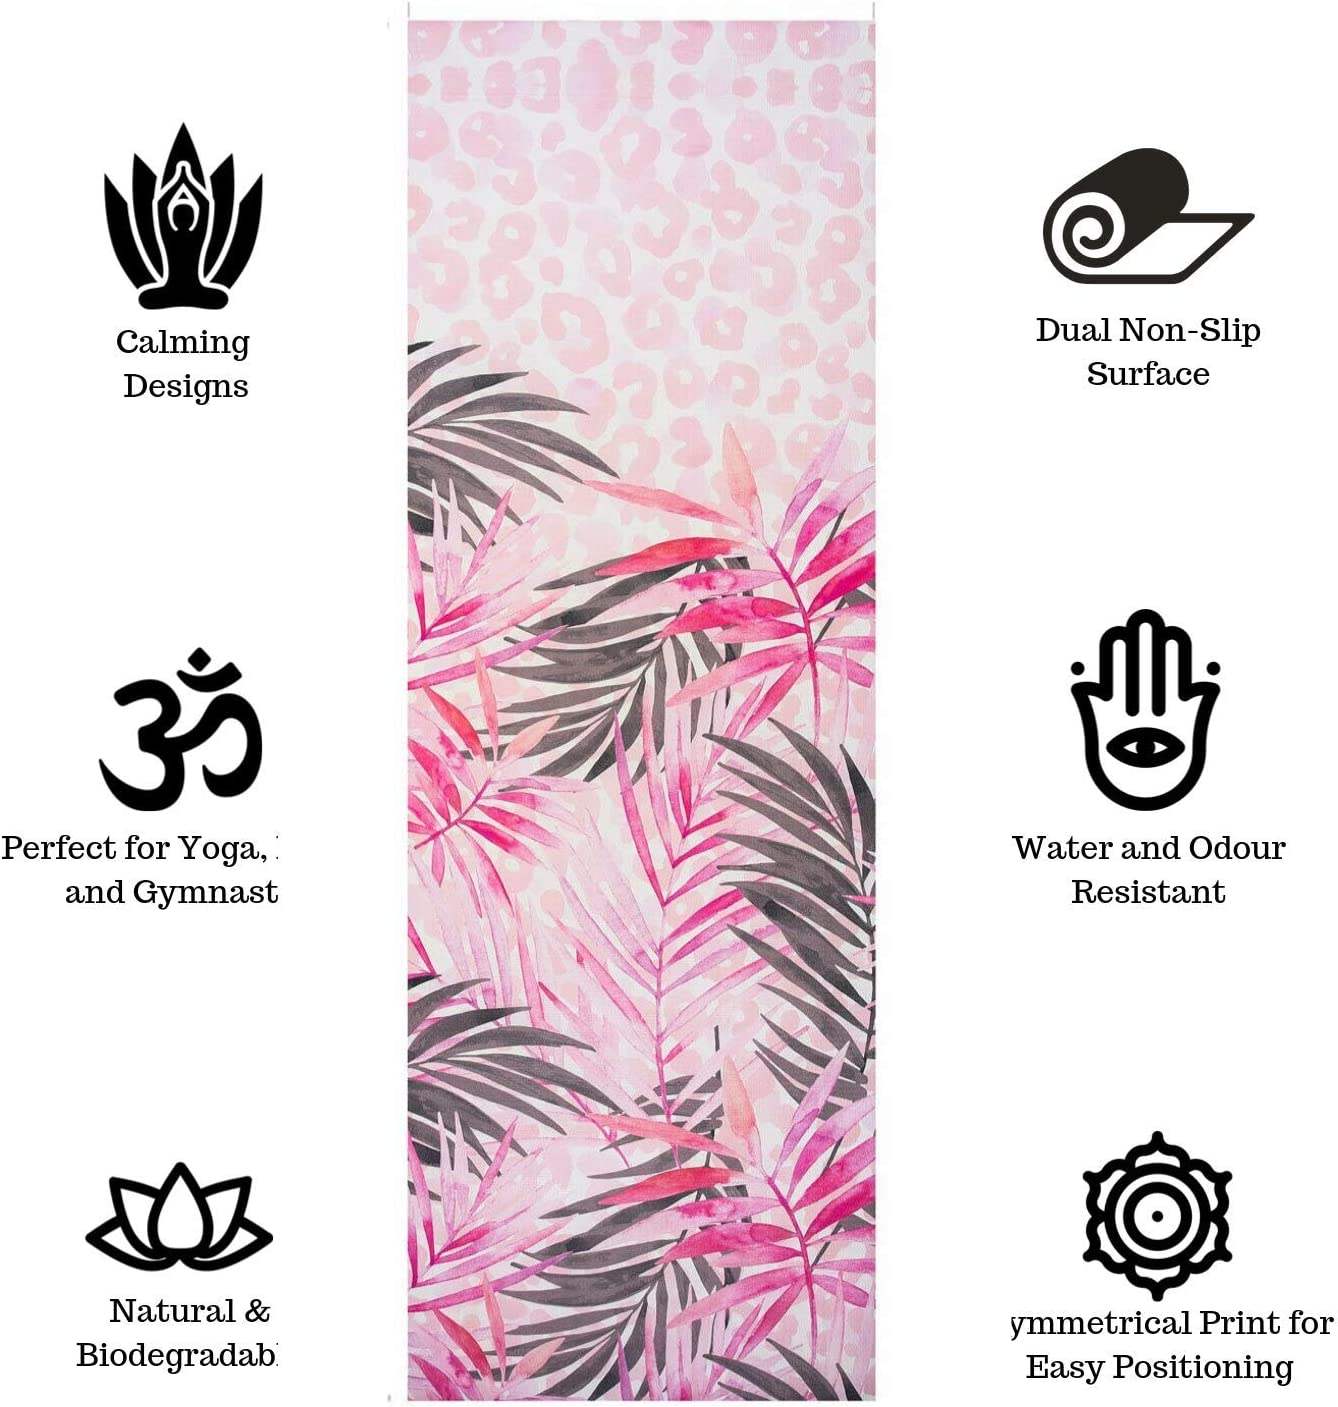 FAIRWAYUK Pilates Mats for Women Extra Thick and Long Pink Exercise Mat Pink Pattern Designs with Carry Strap